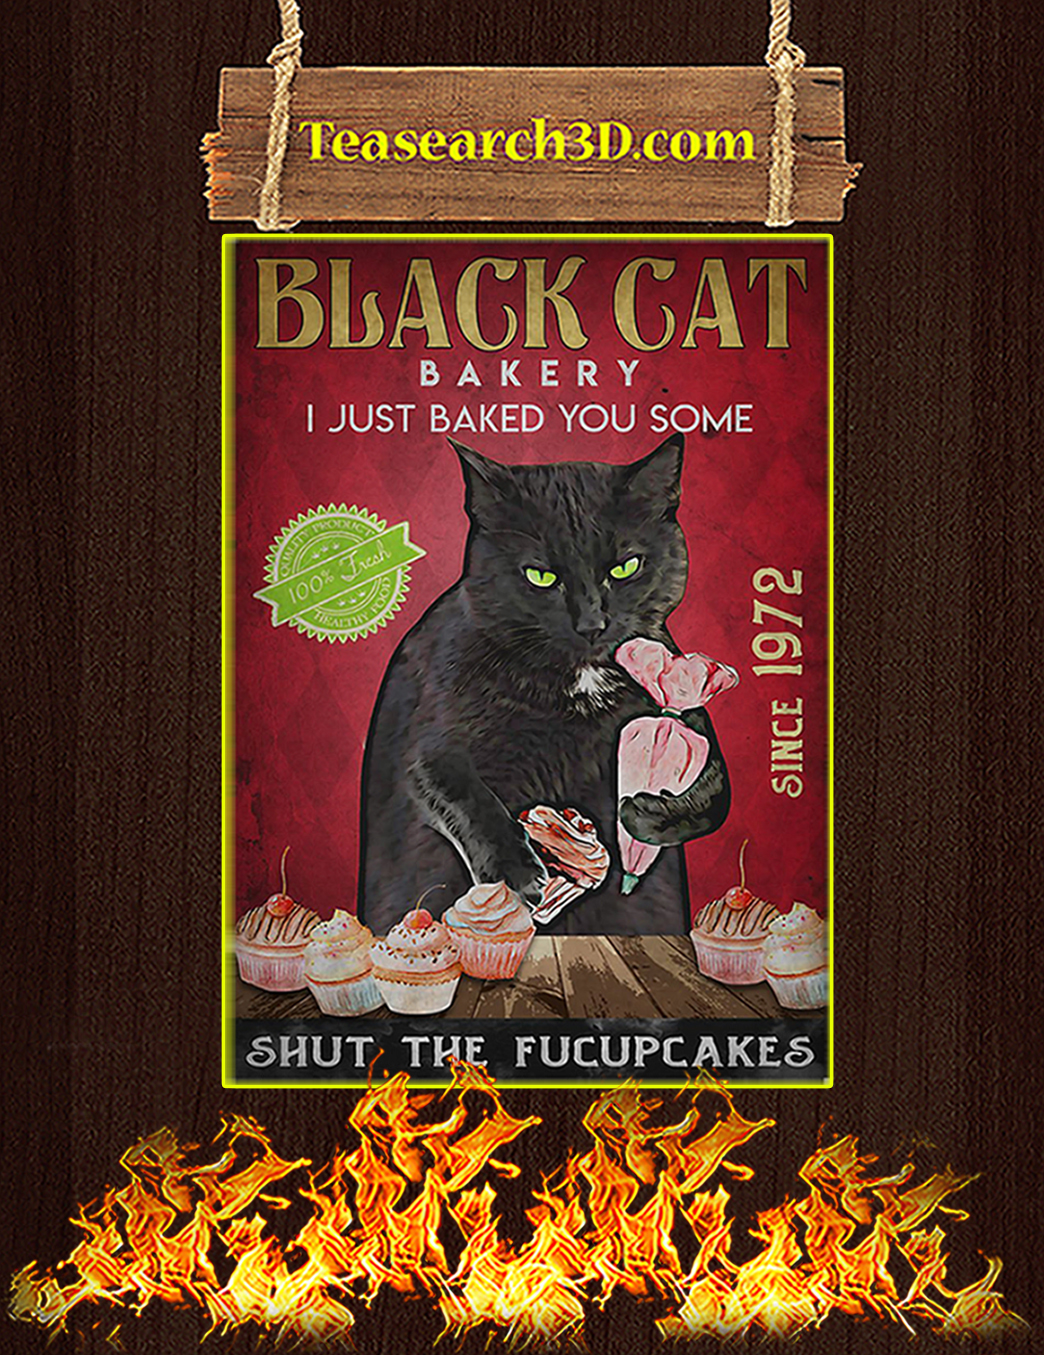 Black cat bakery I just baked you some poster A1